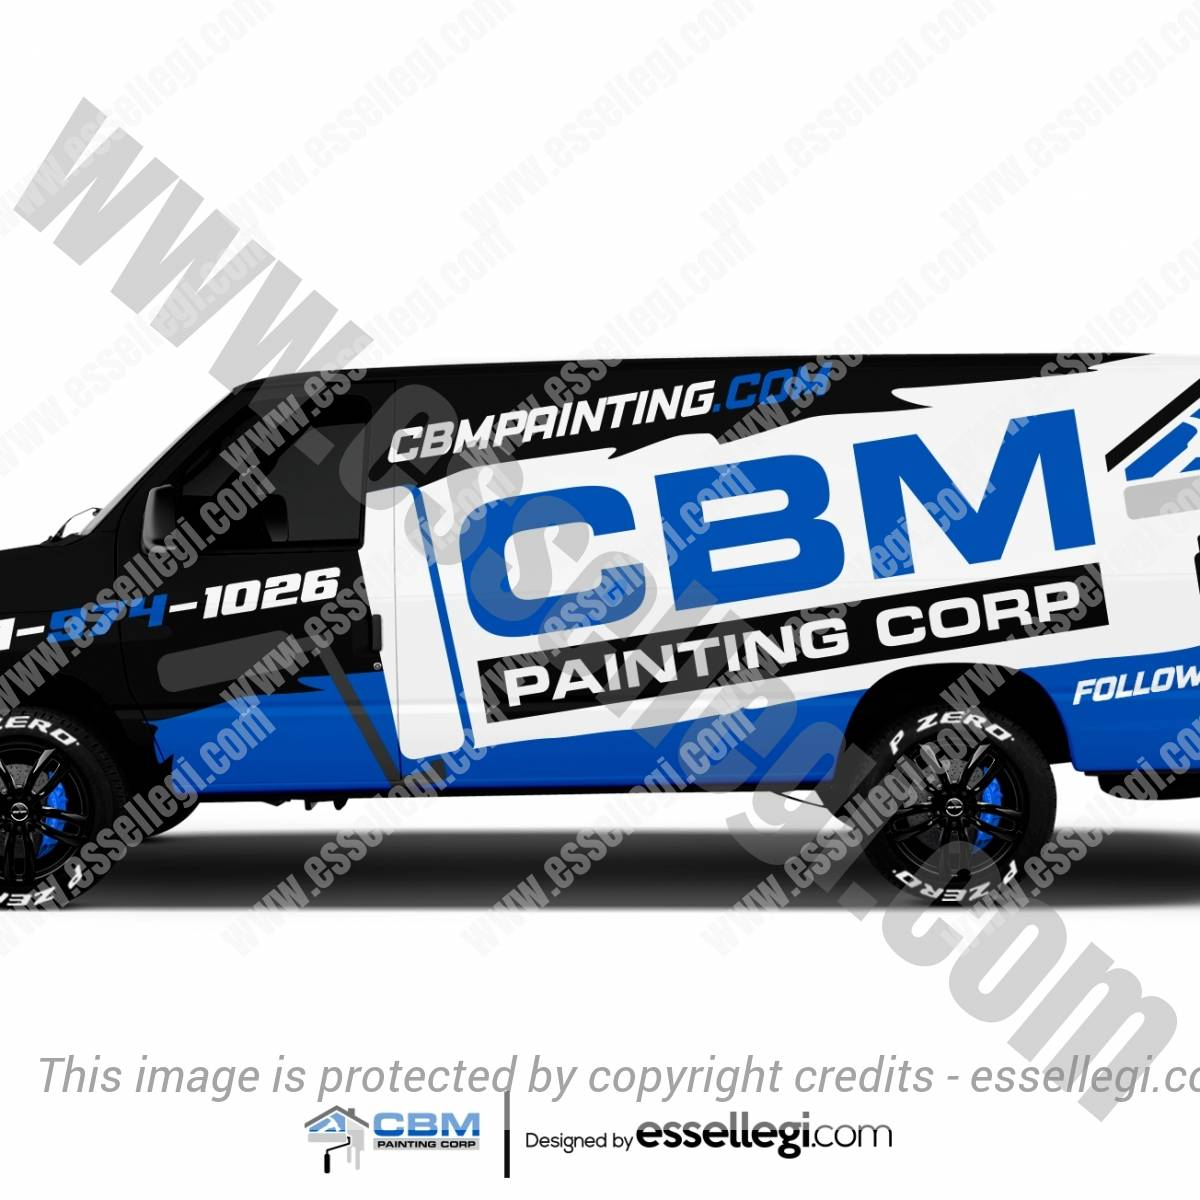 CBM PAINTING | VAN WRAP DESIGN 🇺🇸